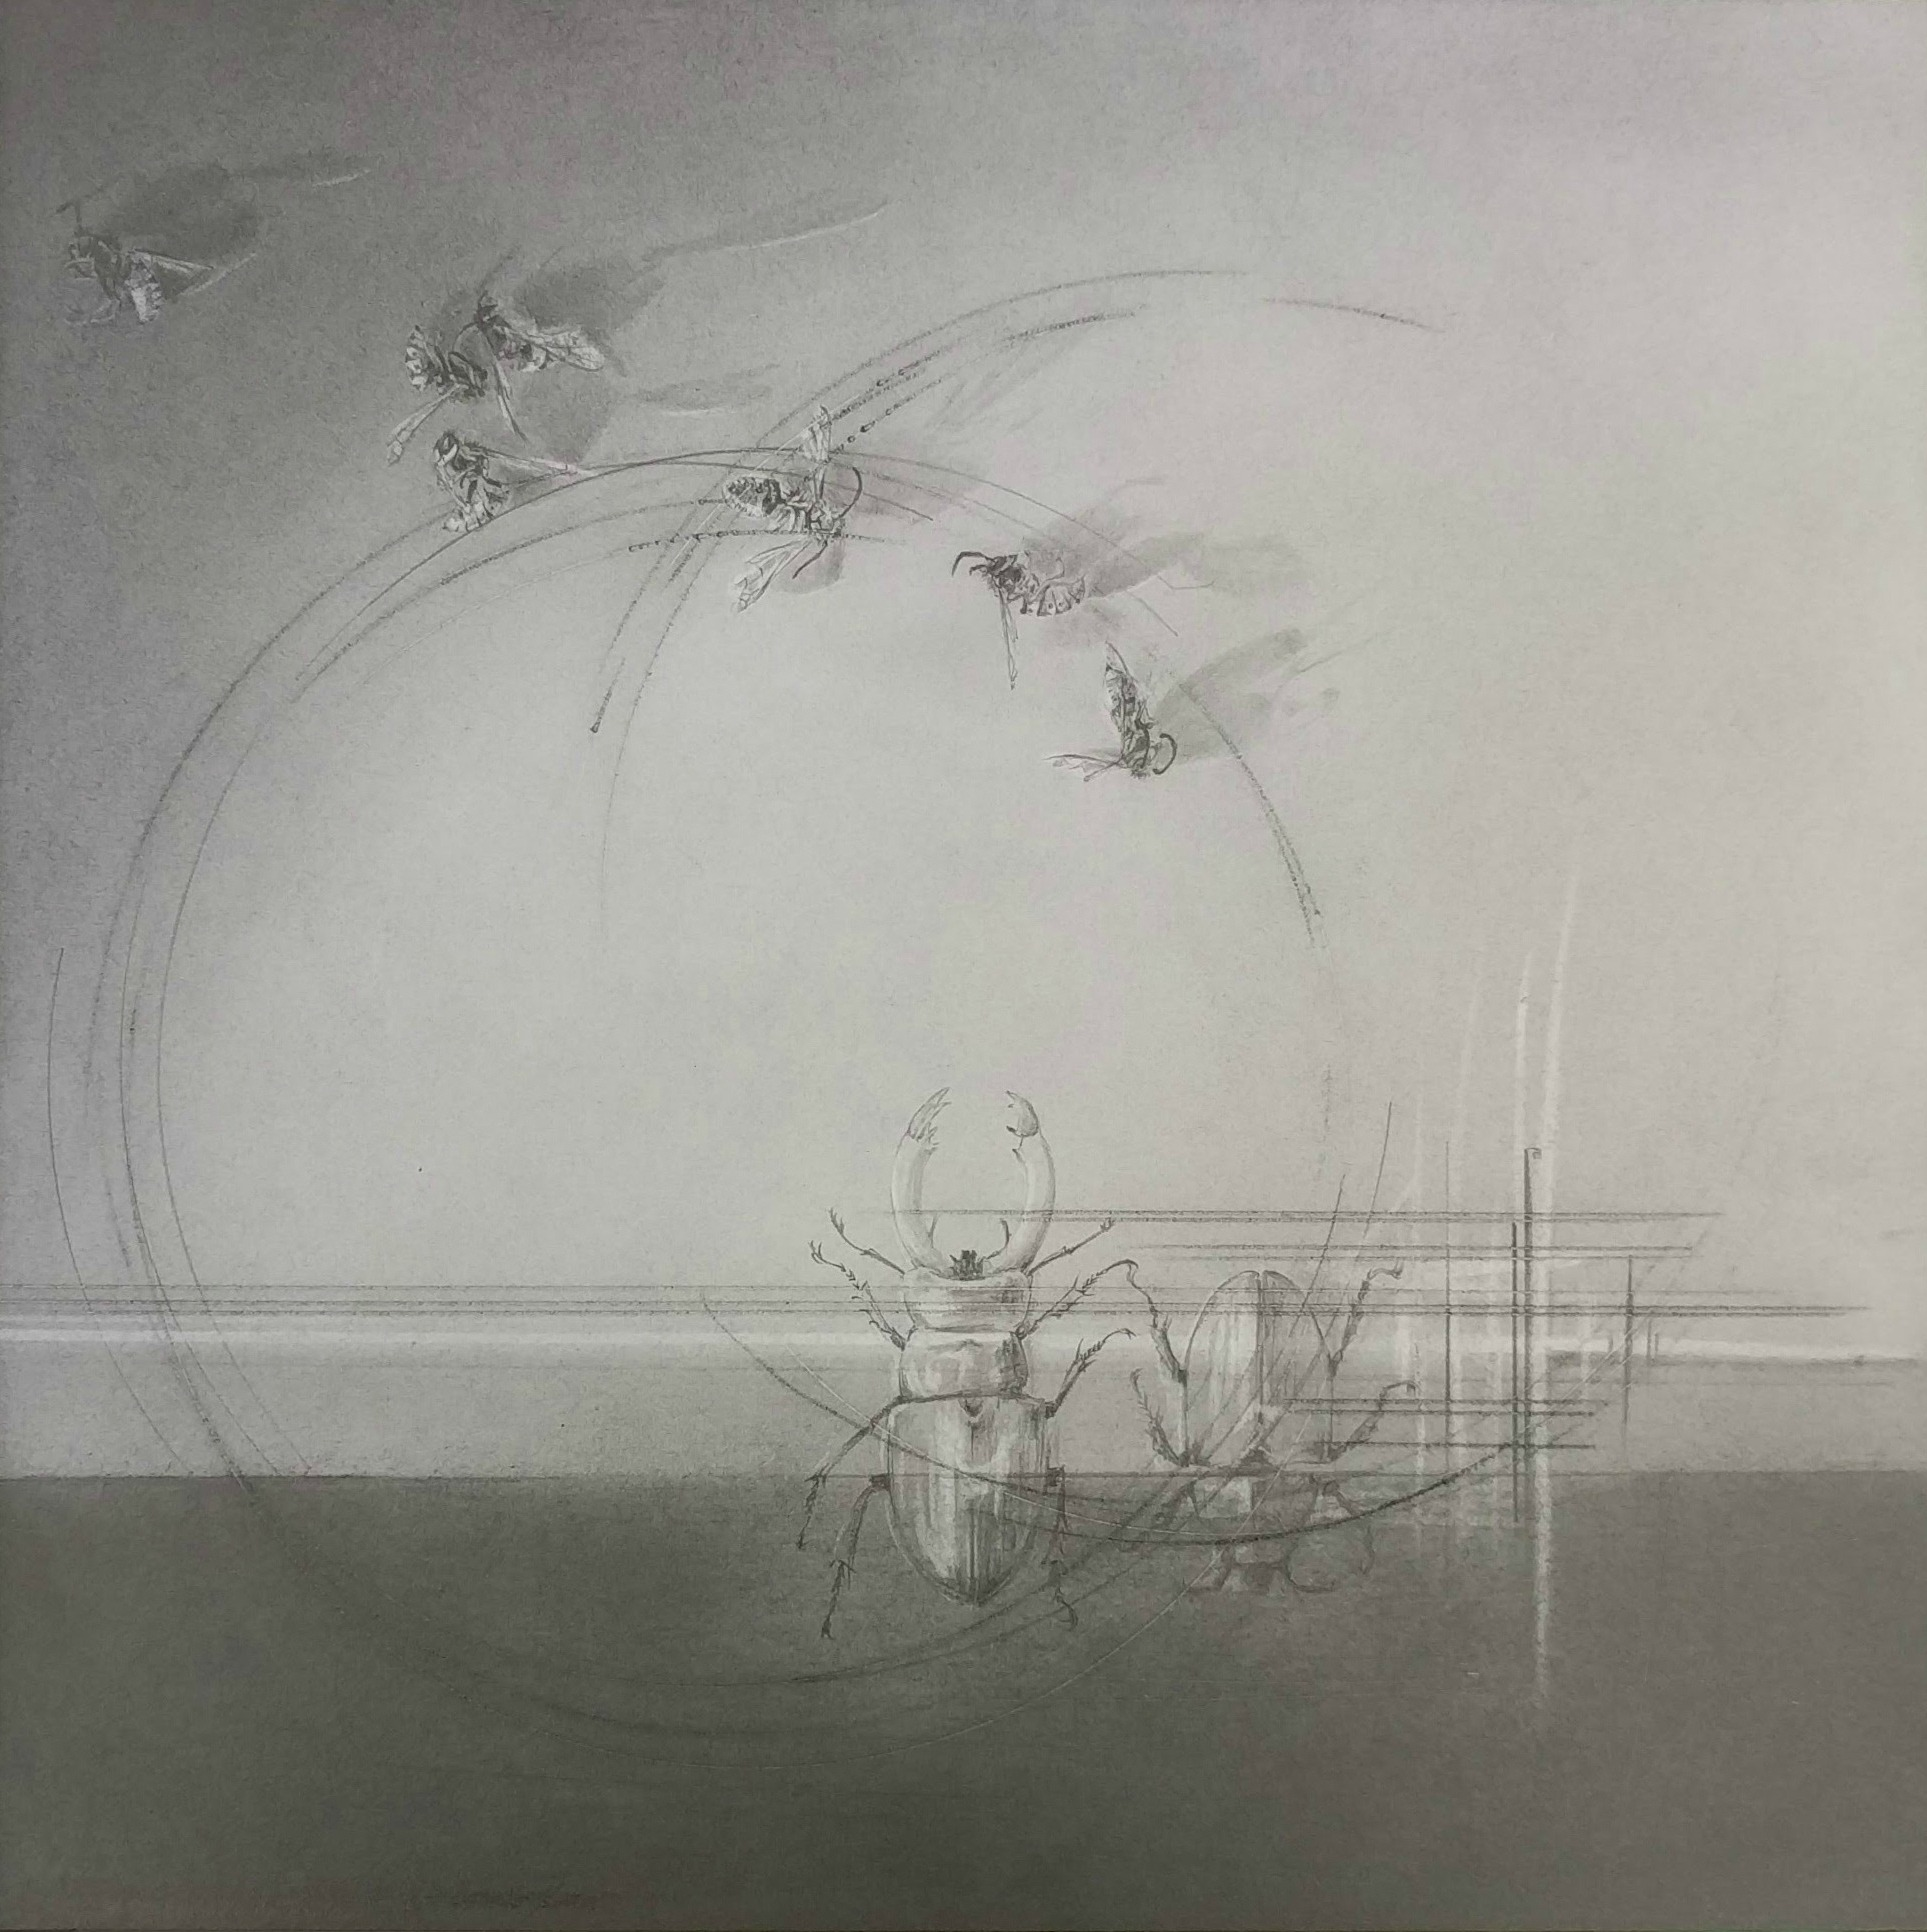 Louisa Crispin, FlightPath ix, Graphite on Bristol, 22 x 22 x 0,  https://www.louisacrispinart.co.uk/